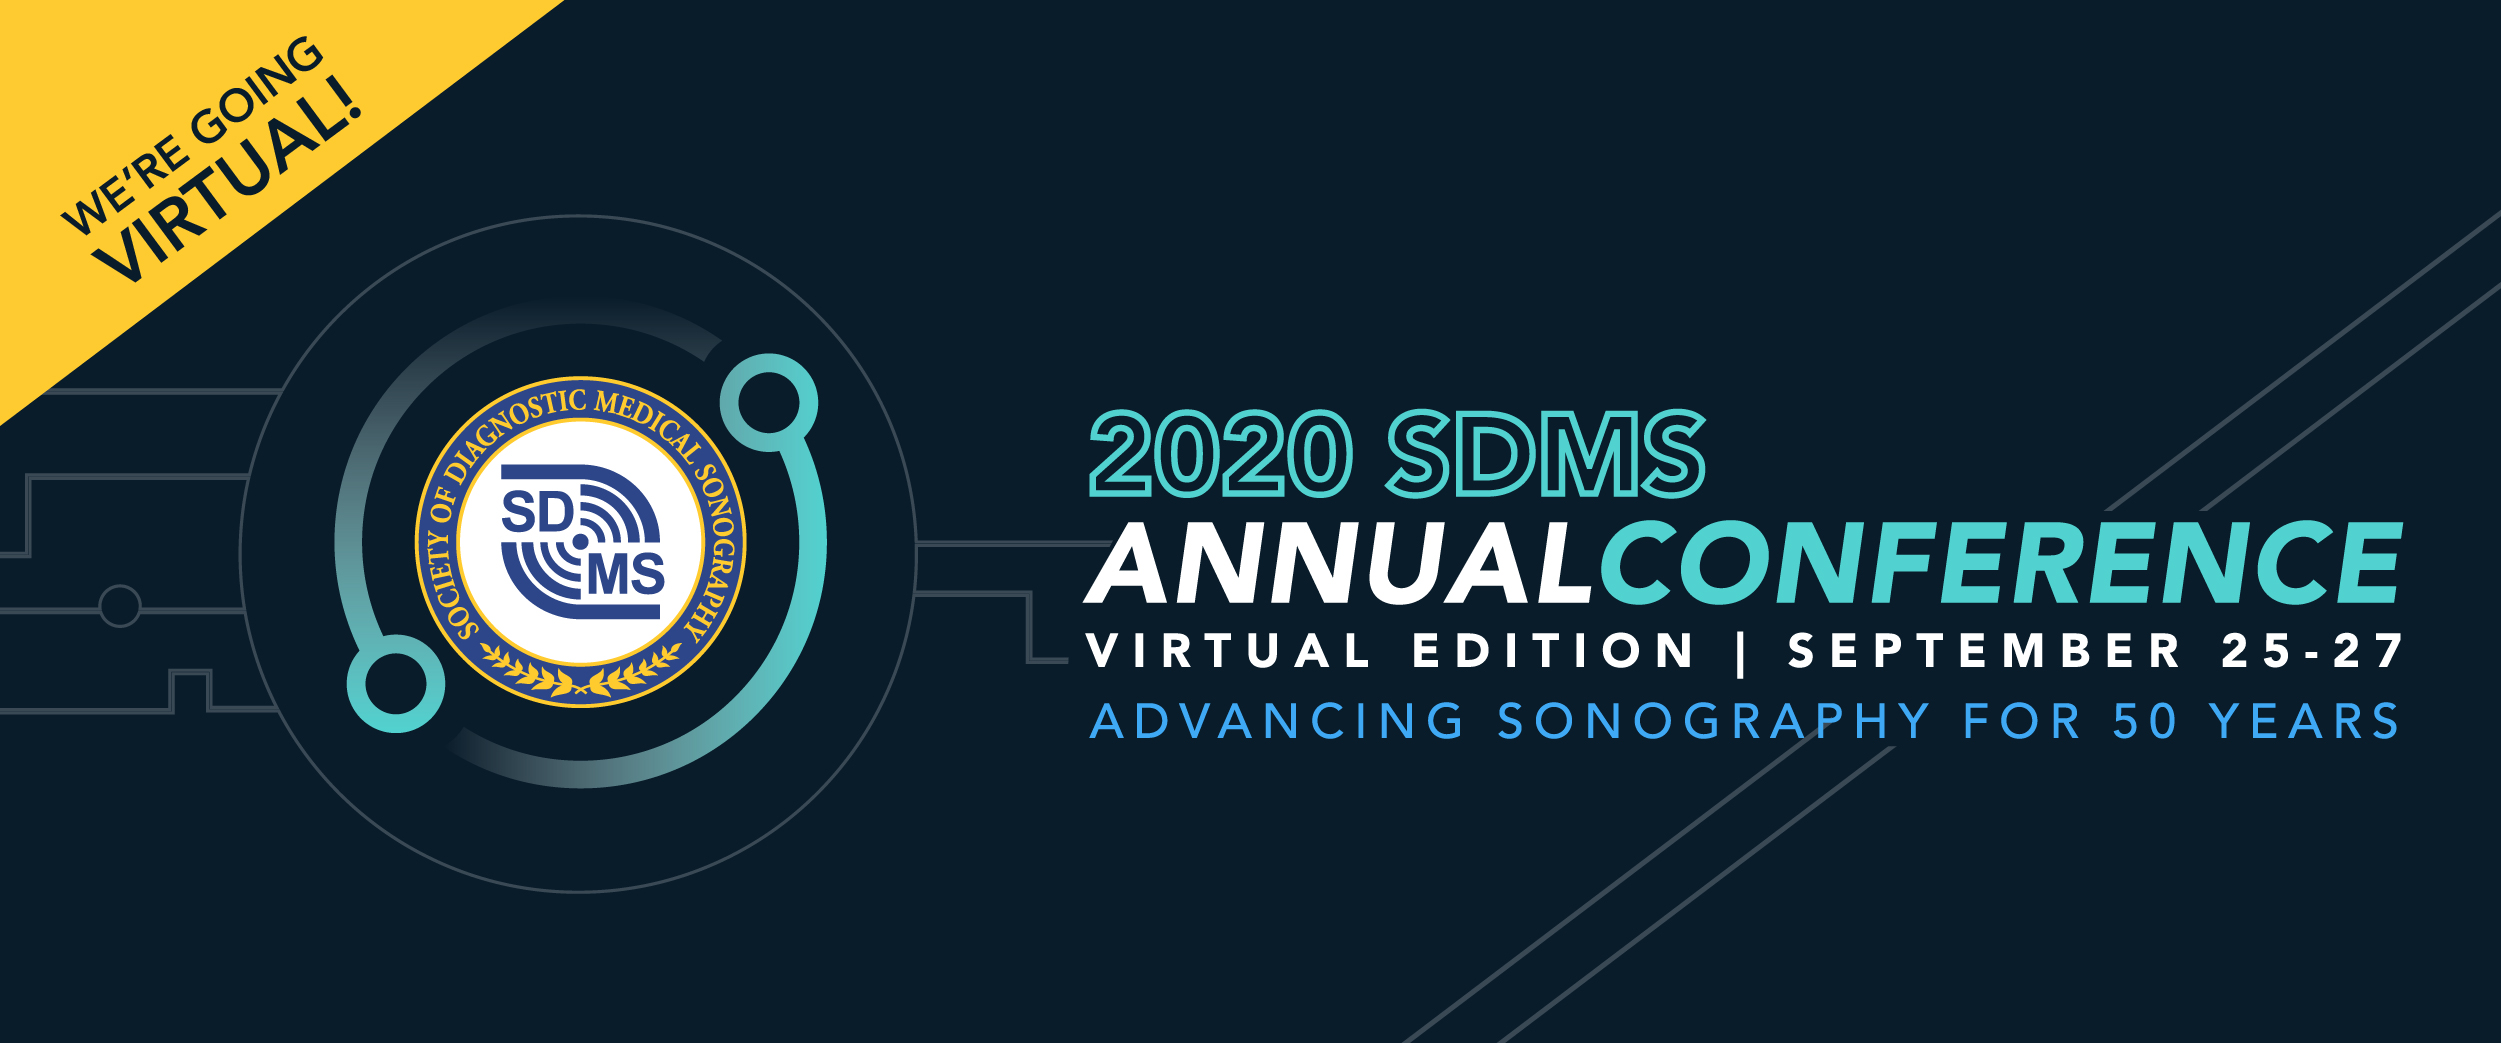 "Graphic stating ""2020 SDMS Annual Conference, virtual edition 